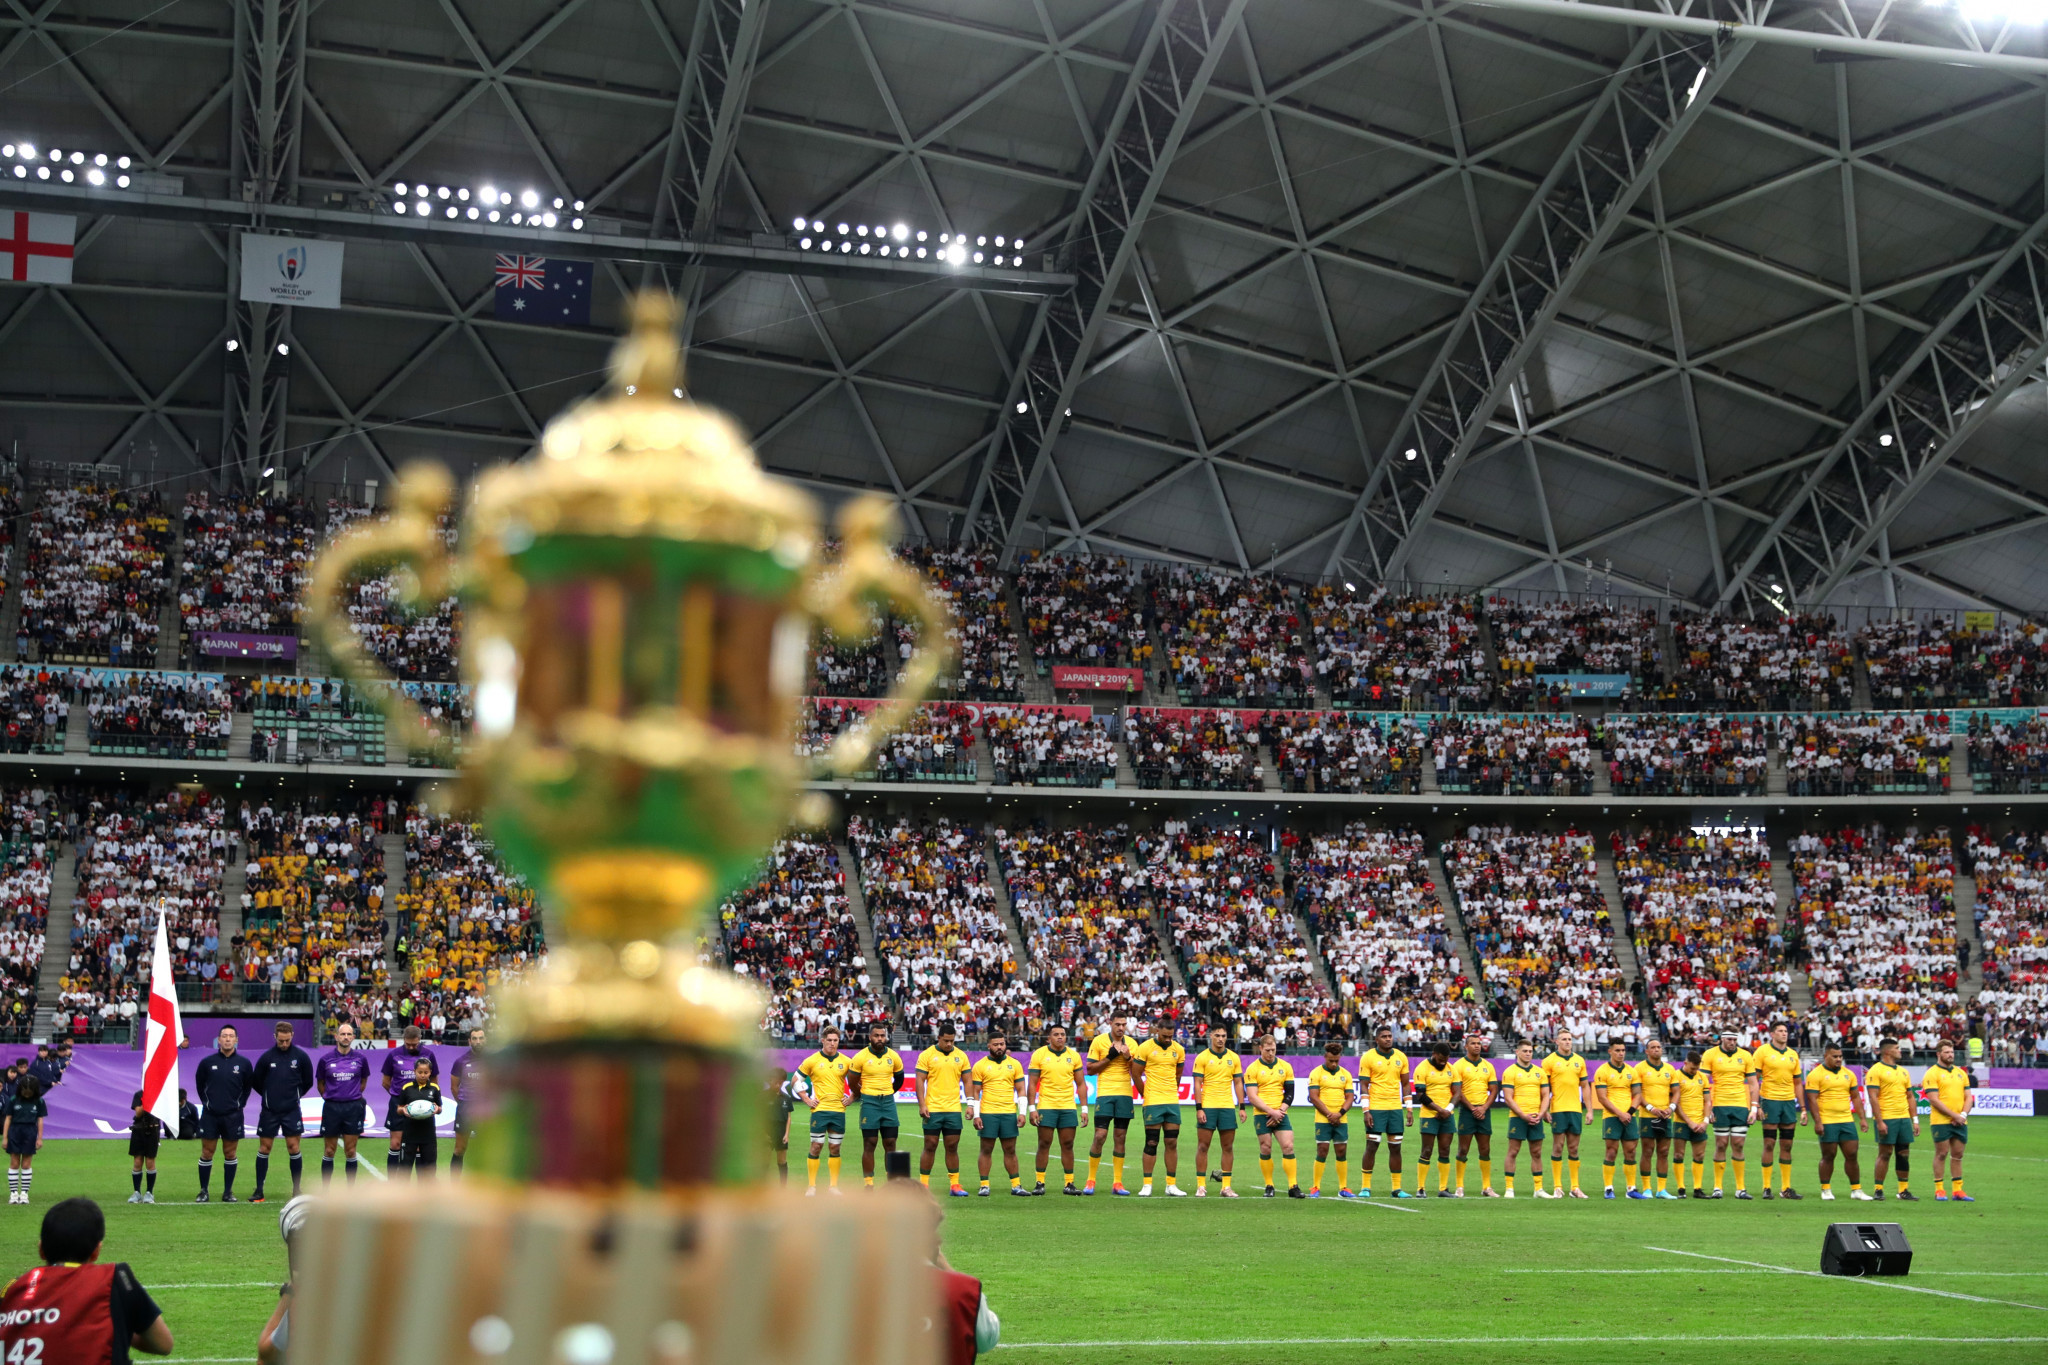 Australia's 2027 Rugby World Cup bid boosted by multi-million dollar funding injection